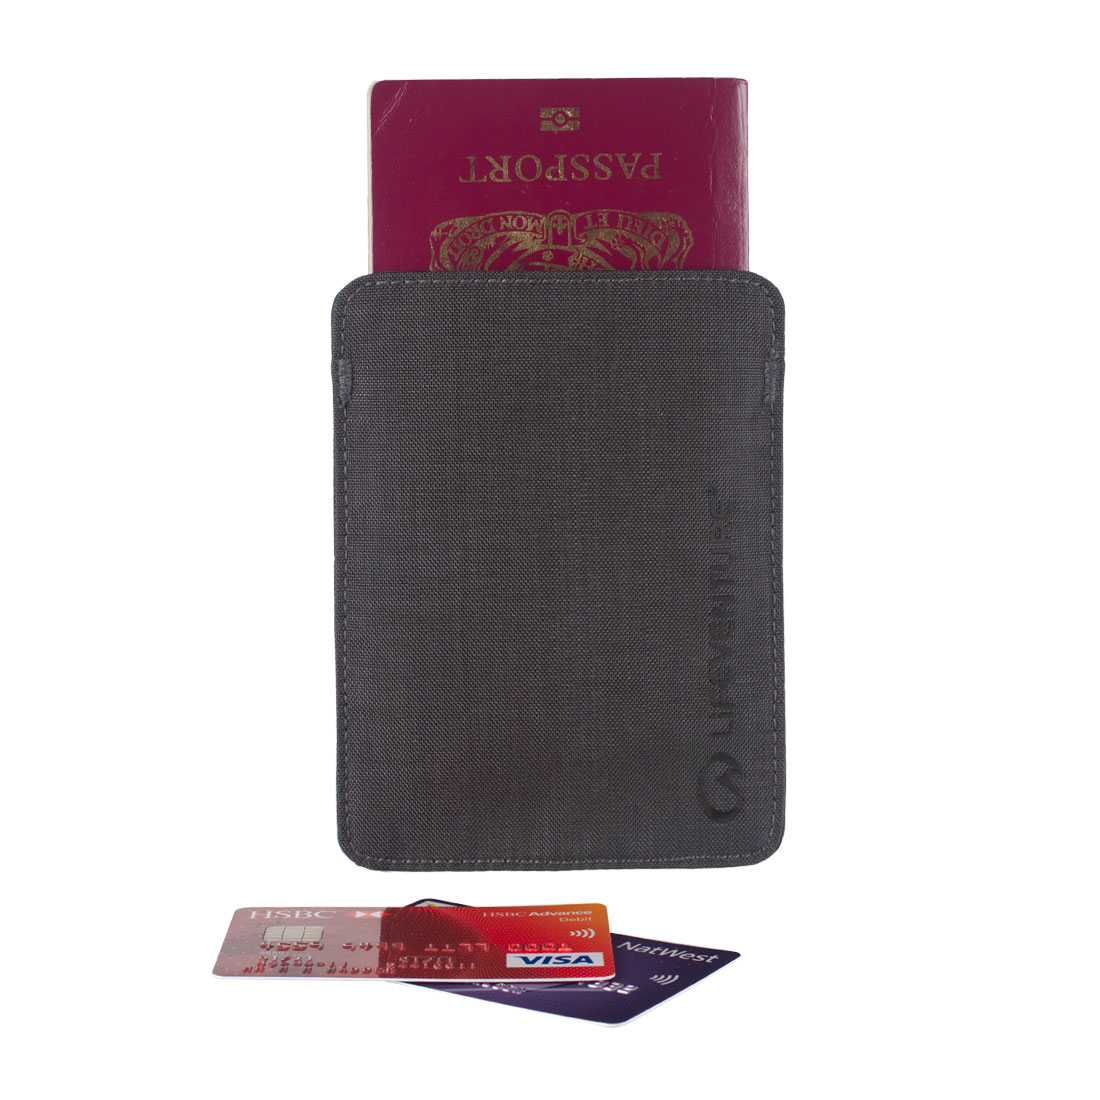 quality design differently new images of RFiD   Passport   Wallet   OAS.ie   Fast Delivery